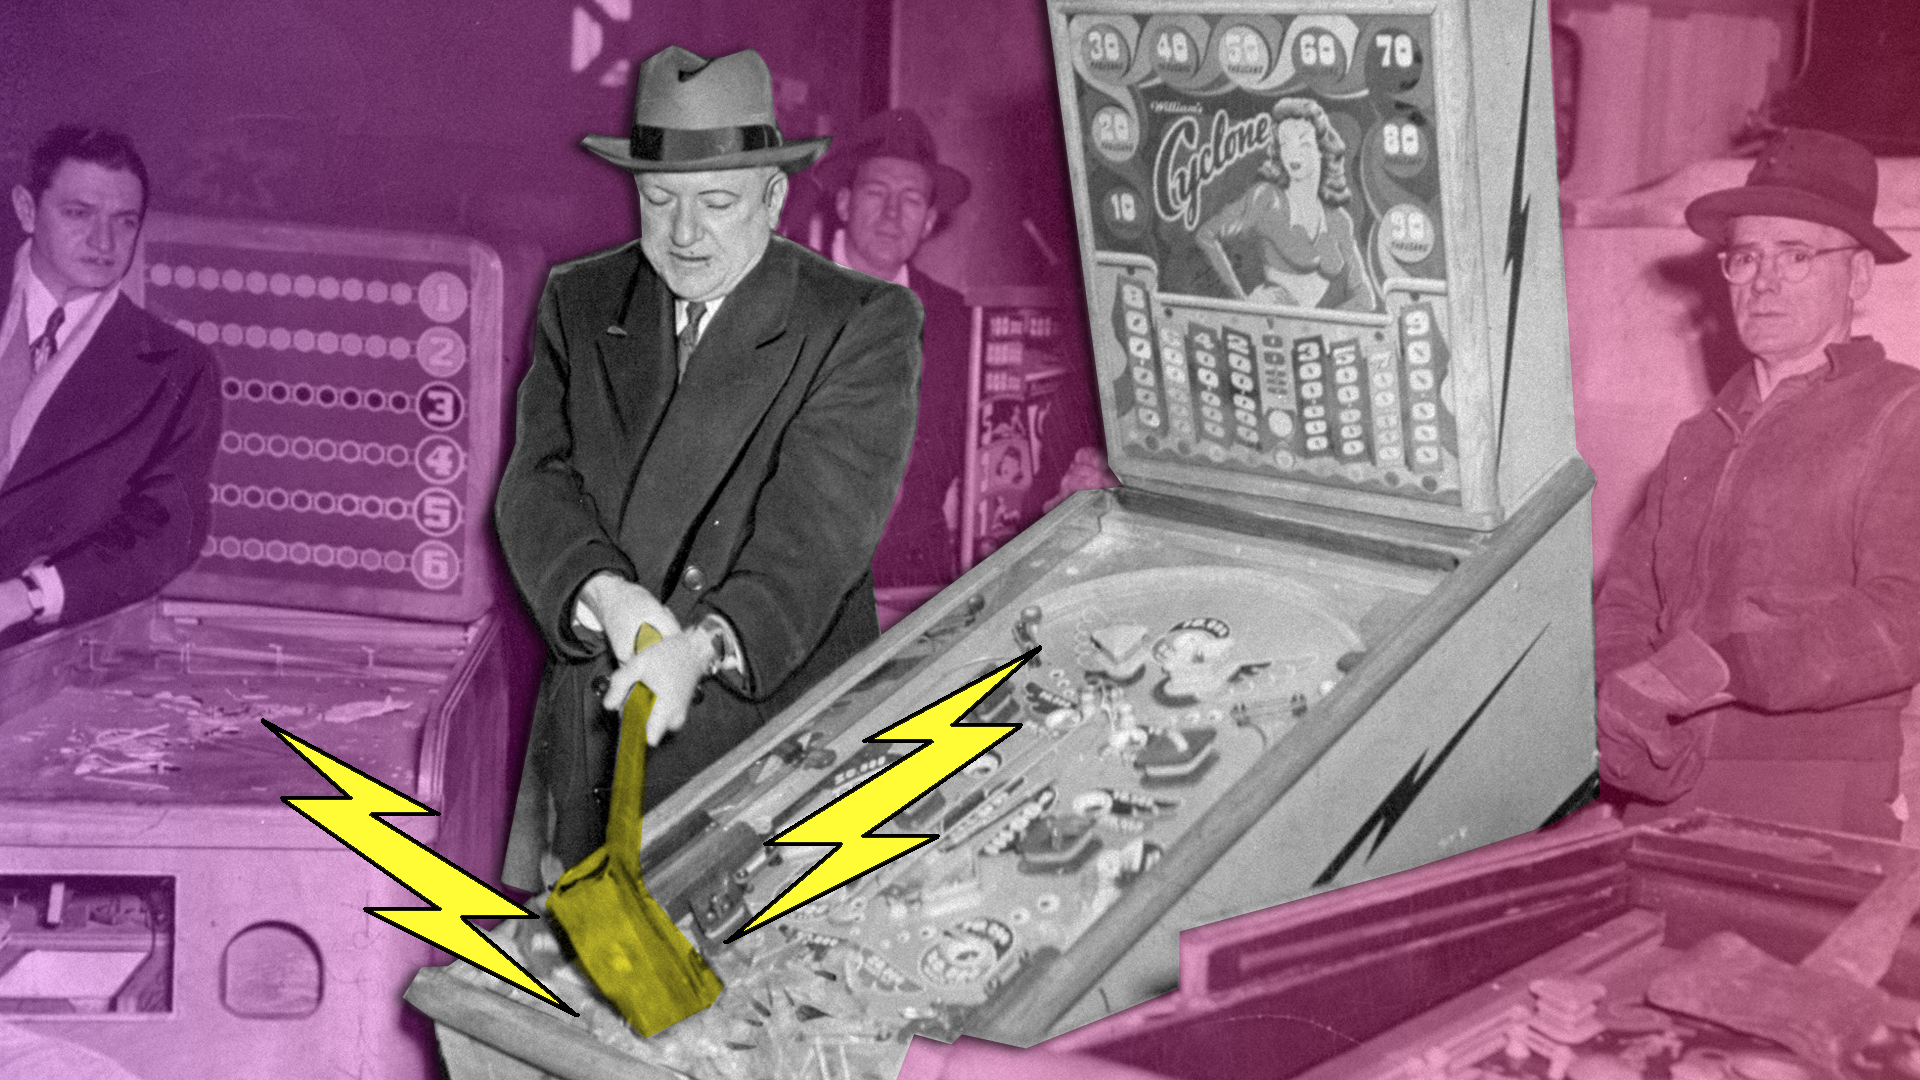 Police commissioner O'Brien smashes a pinball machine with a sledgehammer